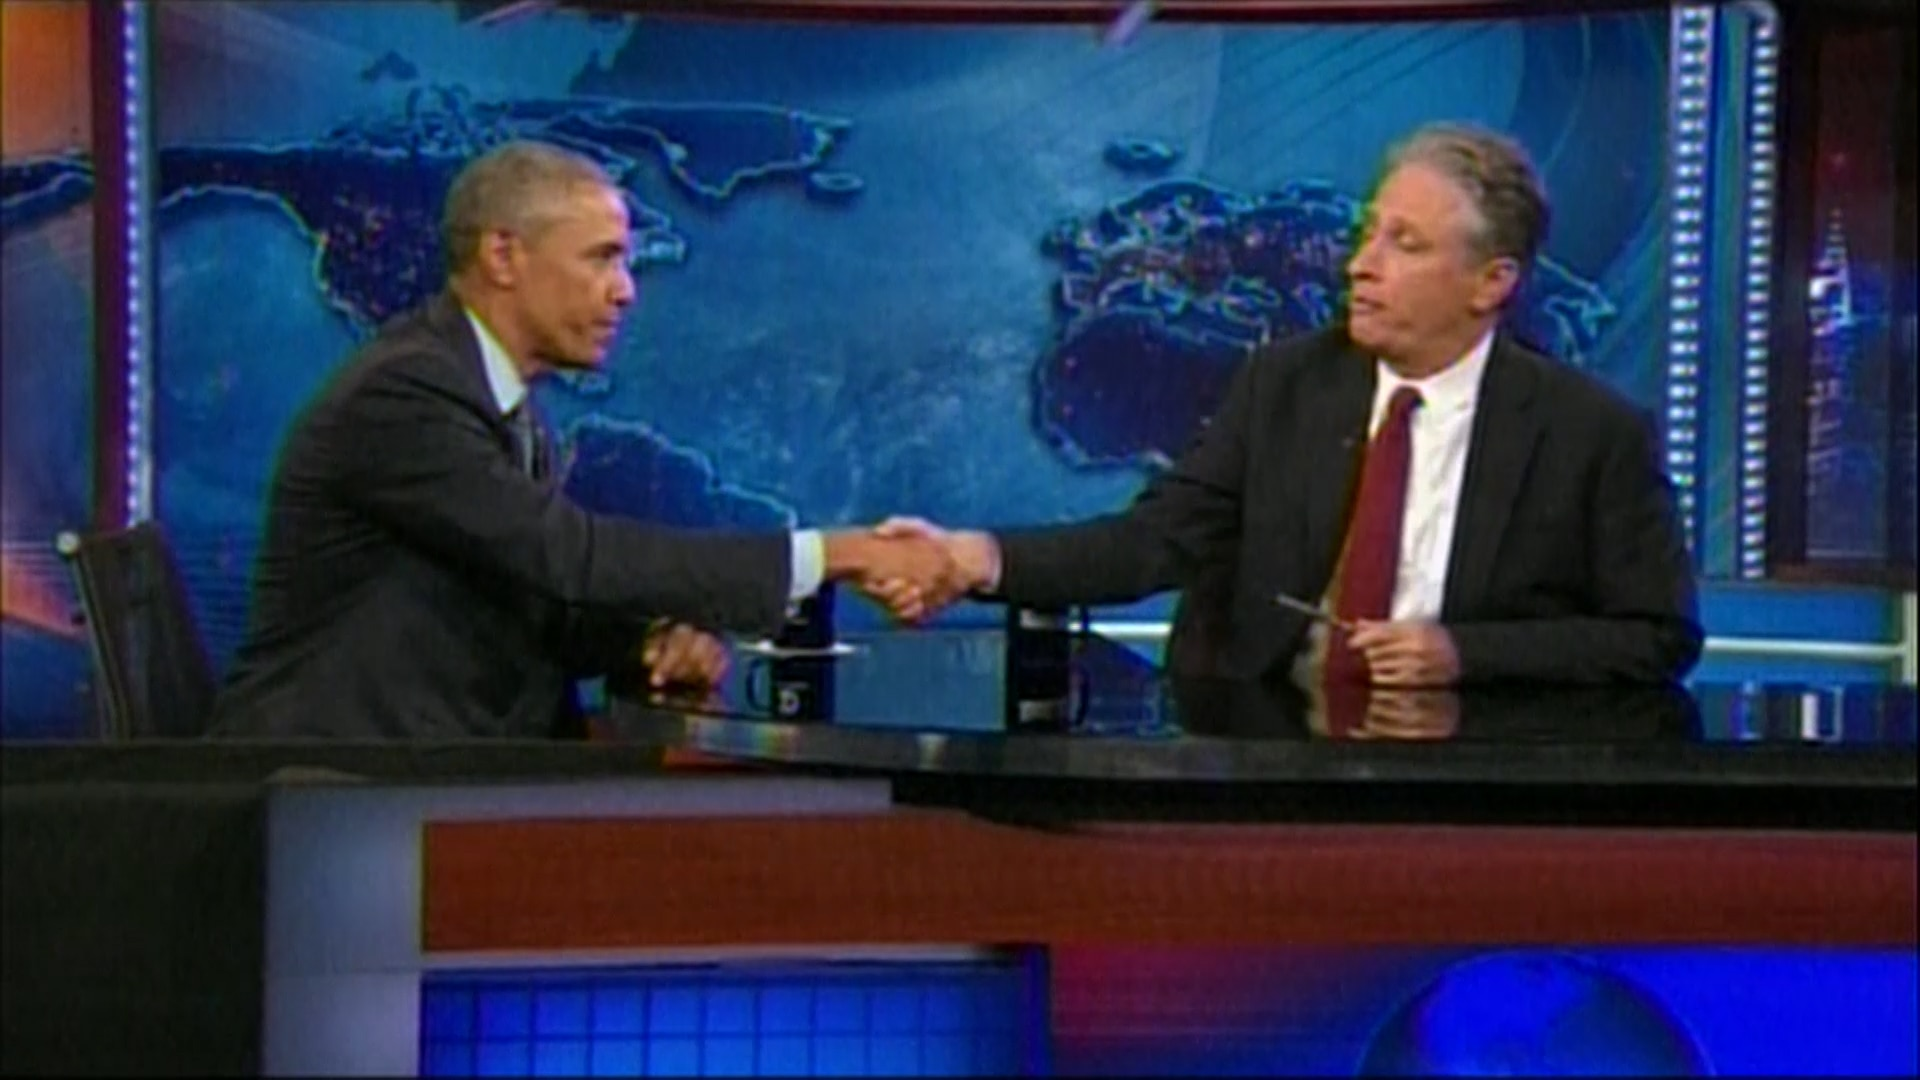 Obama participa do programa americano The Daily Show